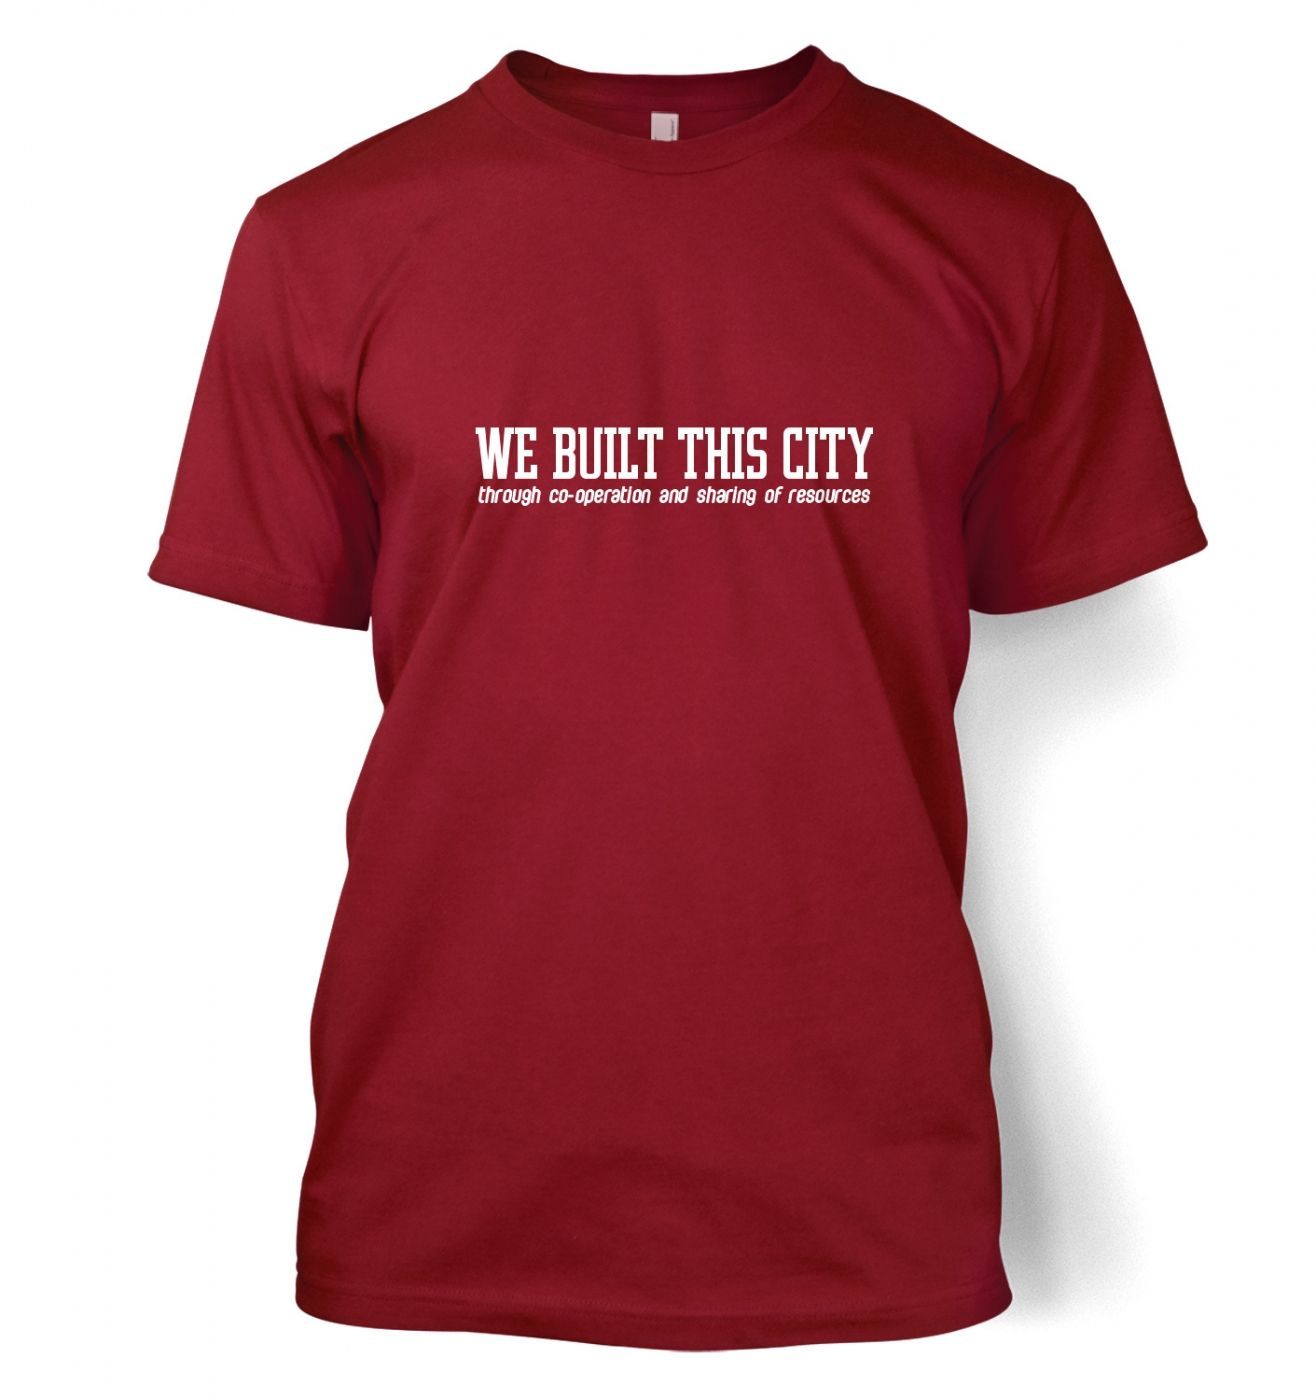 built this city tee